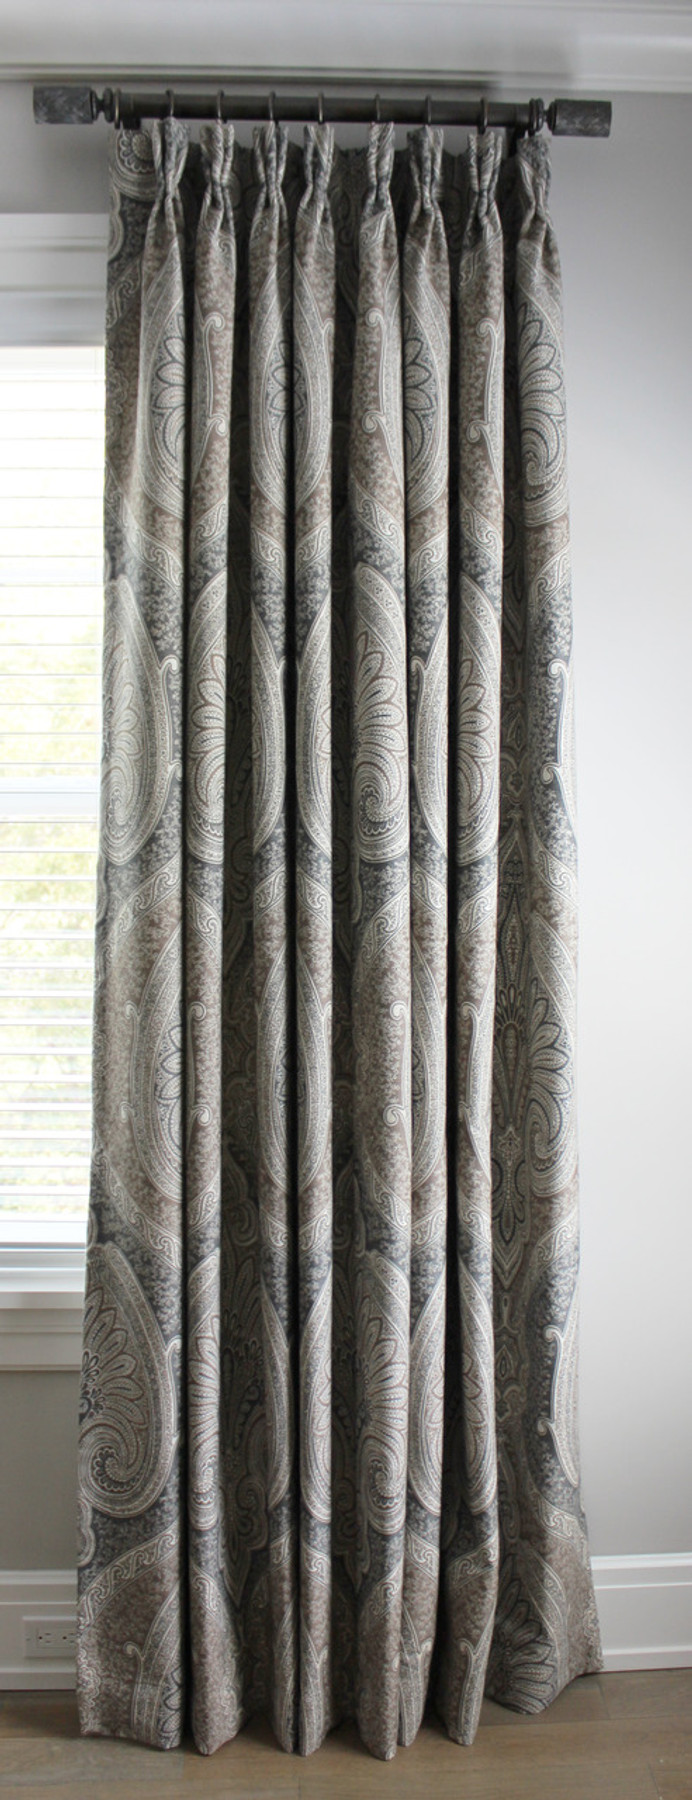 Custom Pleated Drapes by Lynn Chalk in Schumacher Odalisque in Tabac